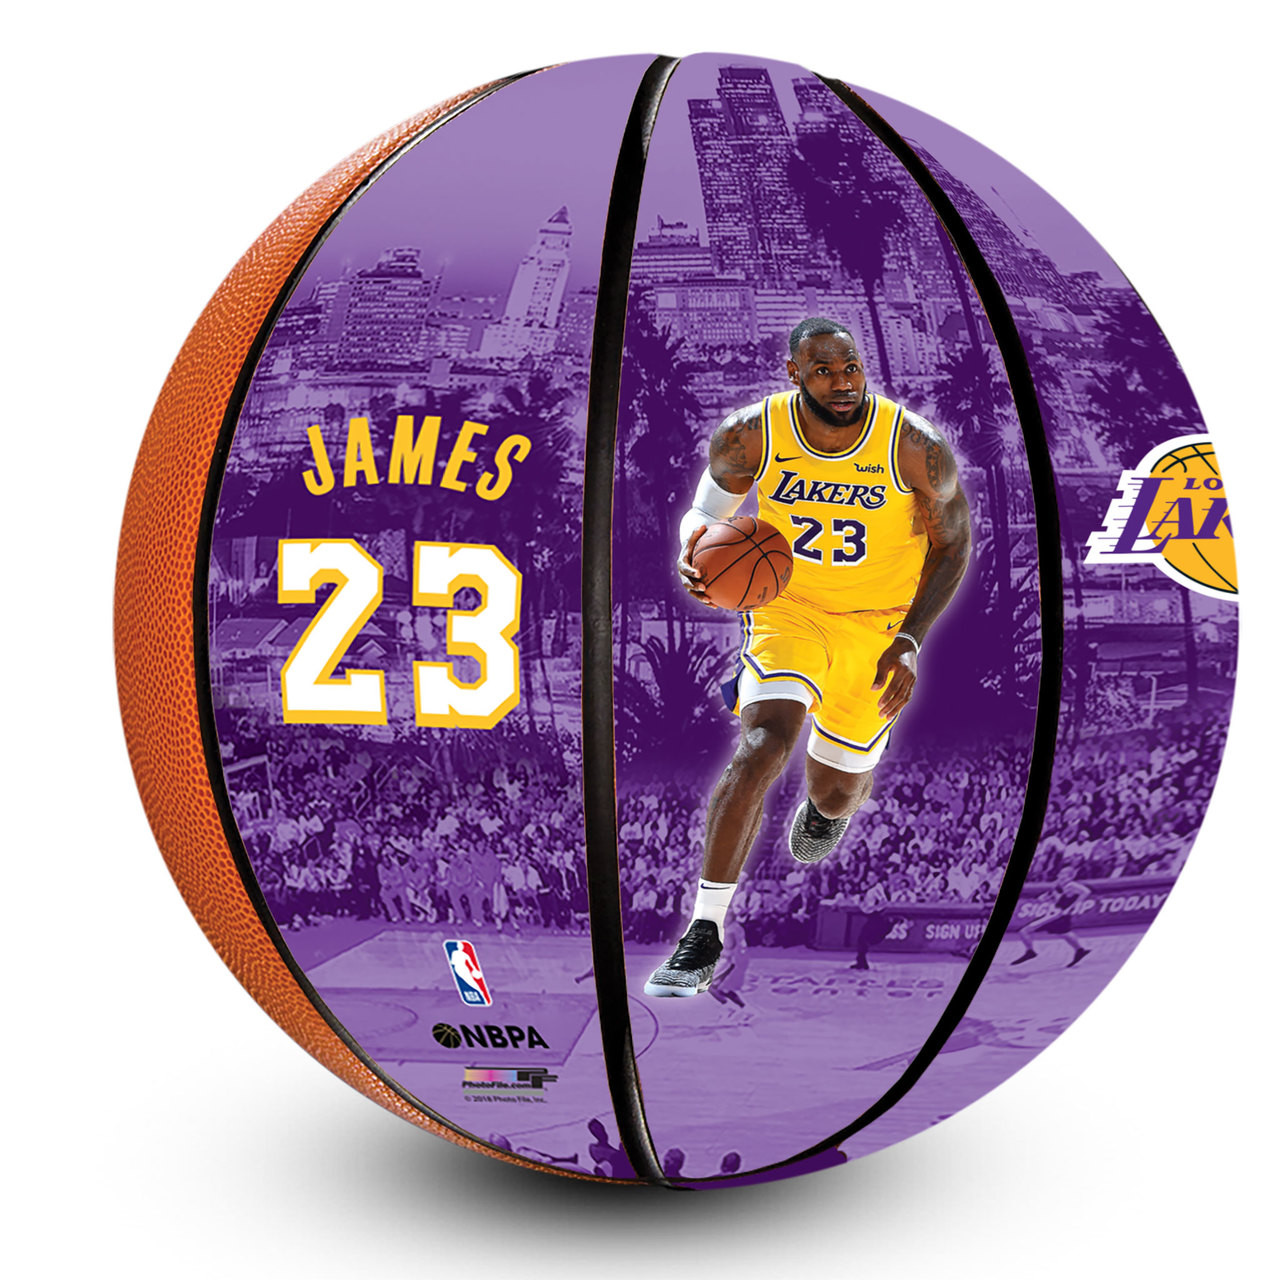 3df8936be LEBRON JAMES LOS ANGELES LAKERS OFFICIALLY LICENSED DEBUT NBA BASKETBALL.  NBA · Image 1